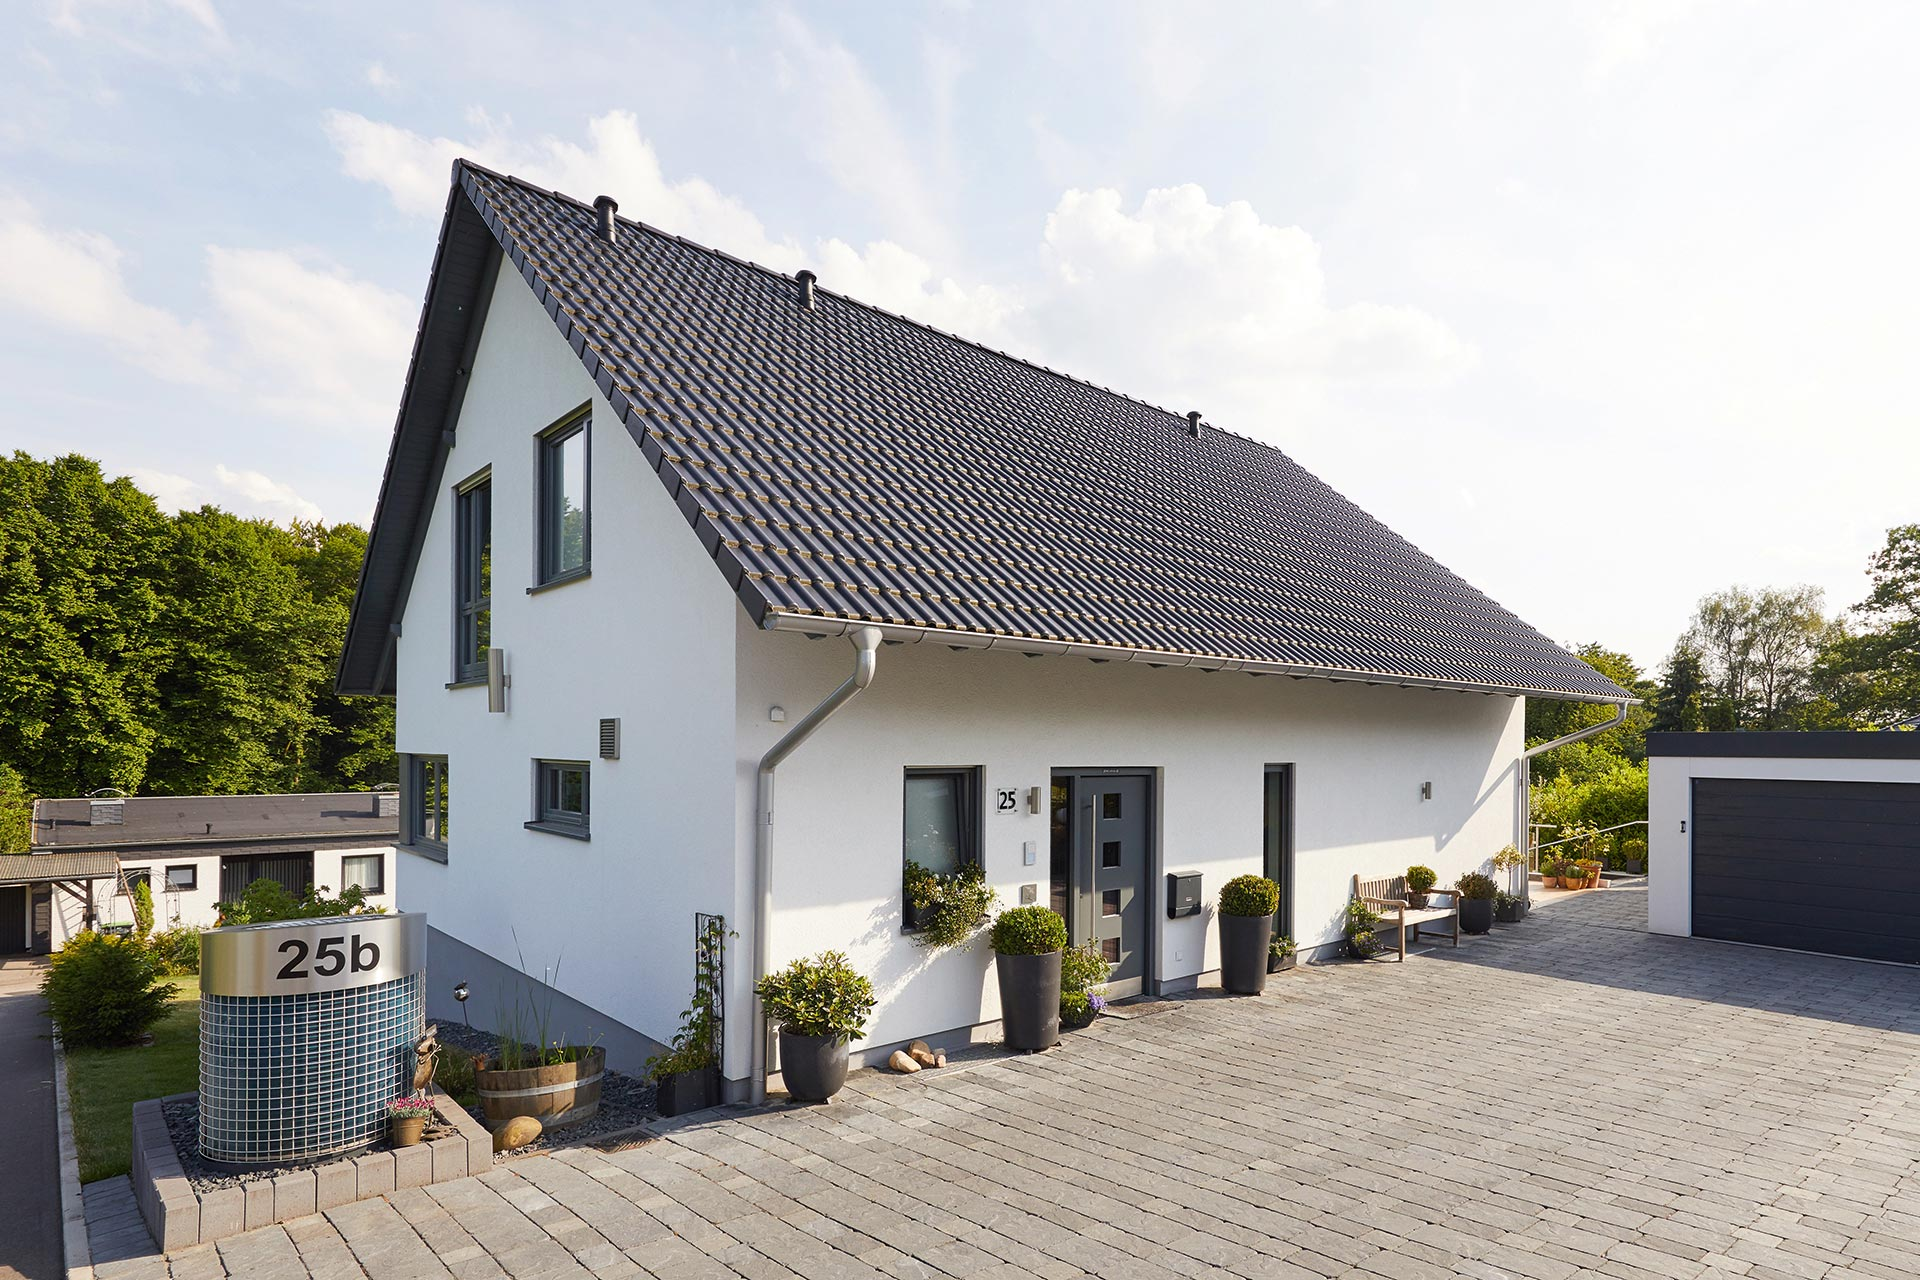 Bungalow 140 Qm Modell Babelsberg - Exklusives Einfamilienhaus In Hanglage